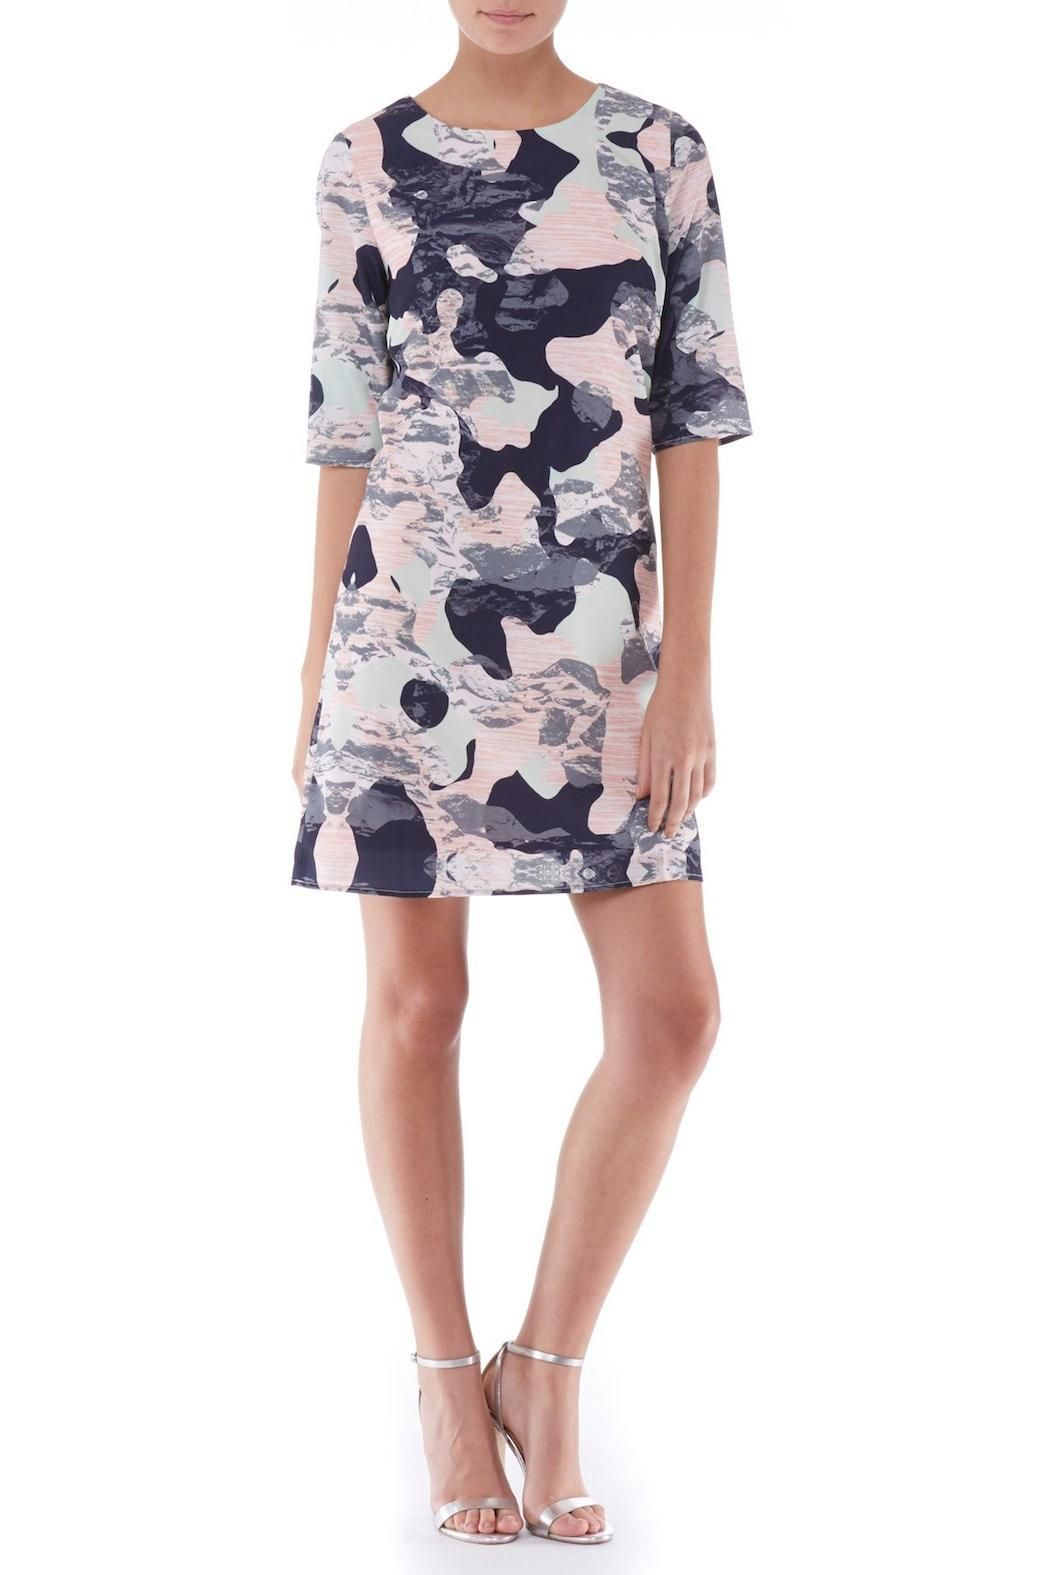 """Refreshingly modern, the Amelia Camo Print Dress combines a wearable tunic shape with a beautiful abstract print with portions of icy green, soft peach and deep navy, finished with a grey overlay, evocative of mountain tops. Fully lined. Concealed zipper. Wash on delicate setting and iron inside out.    Measures: 35.4"""" L   Camo Print Dress by Sugarhill Boutique. Clothing - Dresses - Short Sleeve Clothing - Dresses - Printed Tyne and Wear, North East England, England, United Kingdom"""